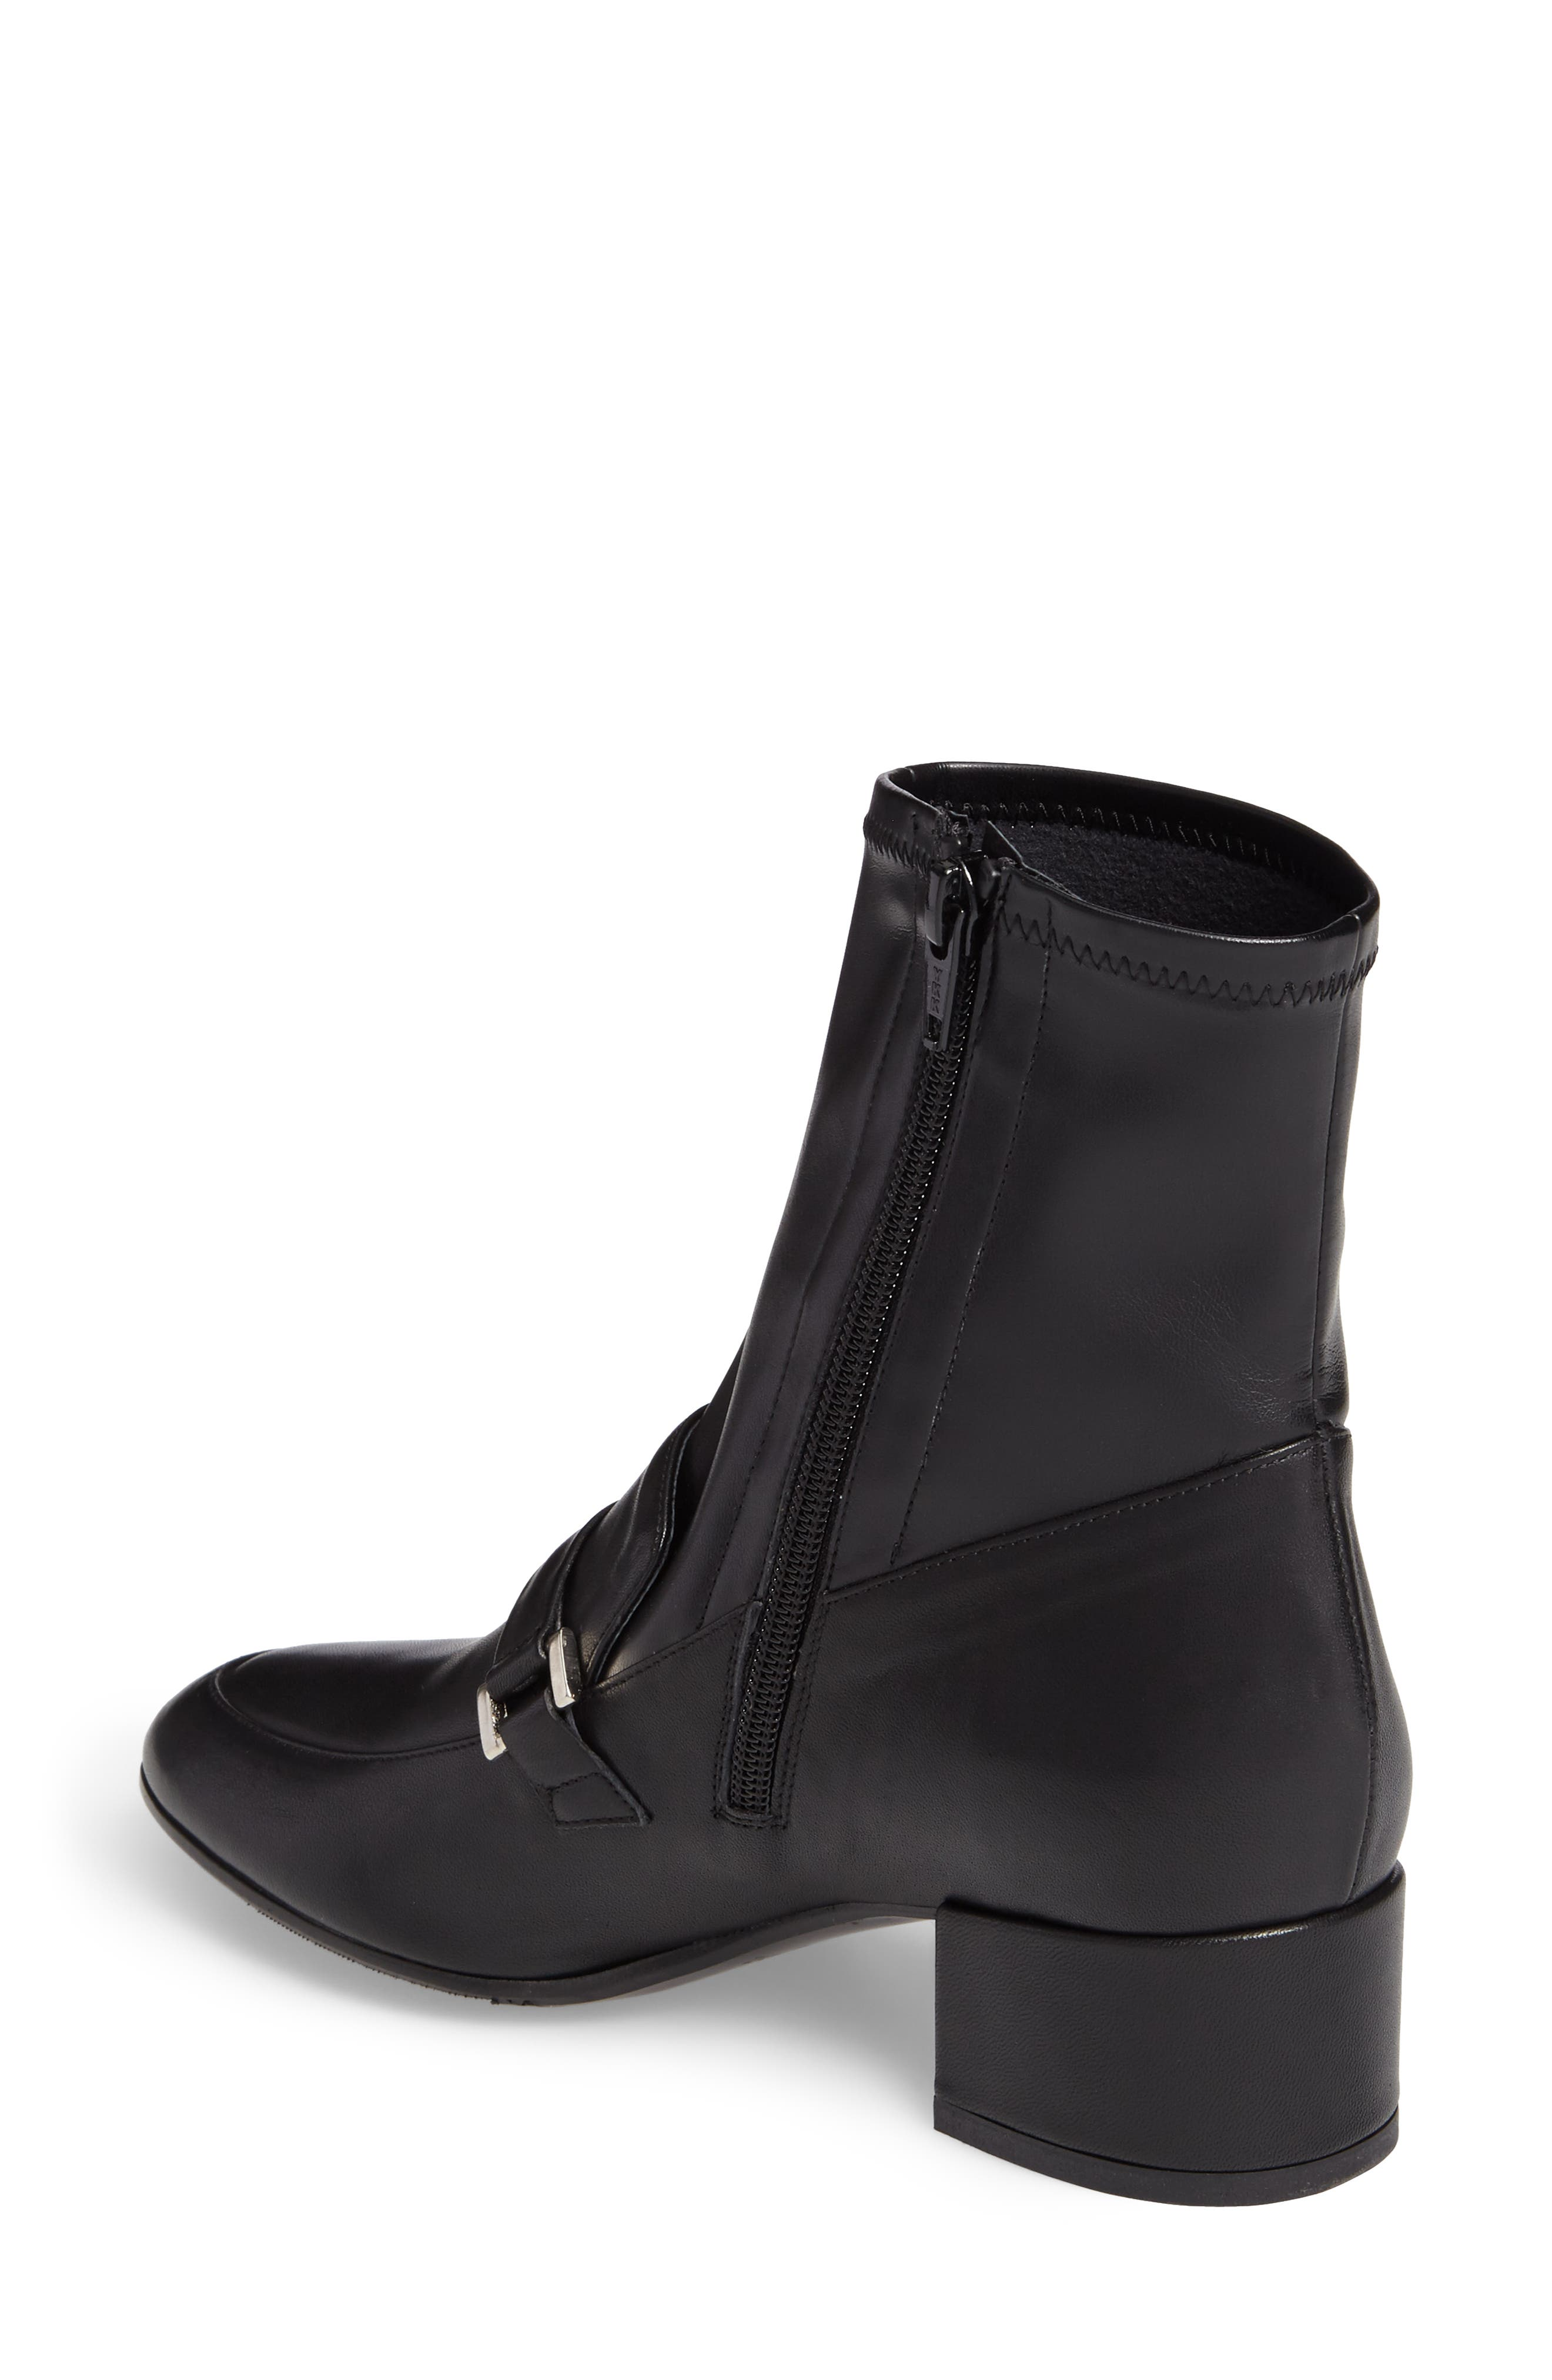 Mod Loafer Bootie,                             Alternate thumbnail 2, color,                             Black Stretch Leather